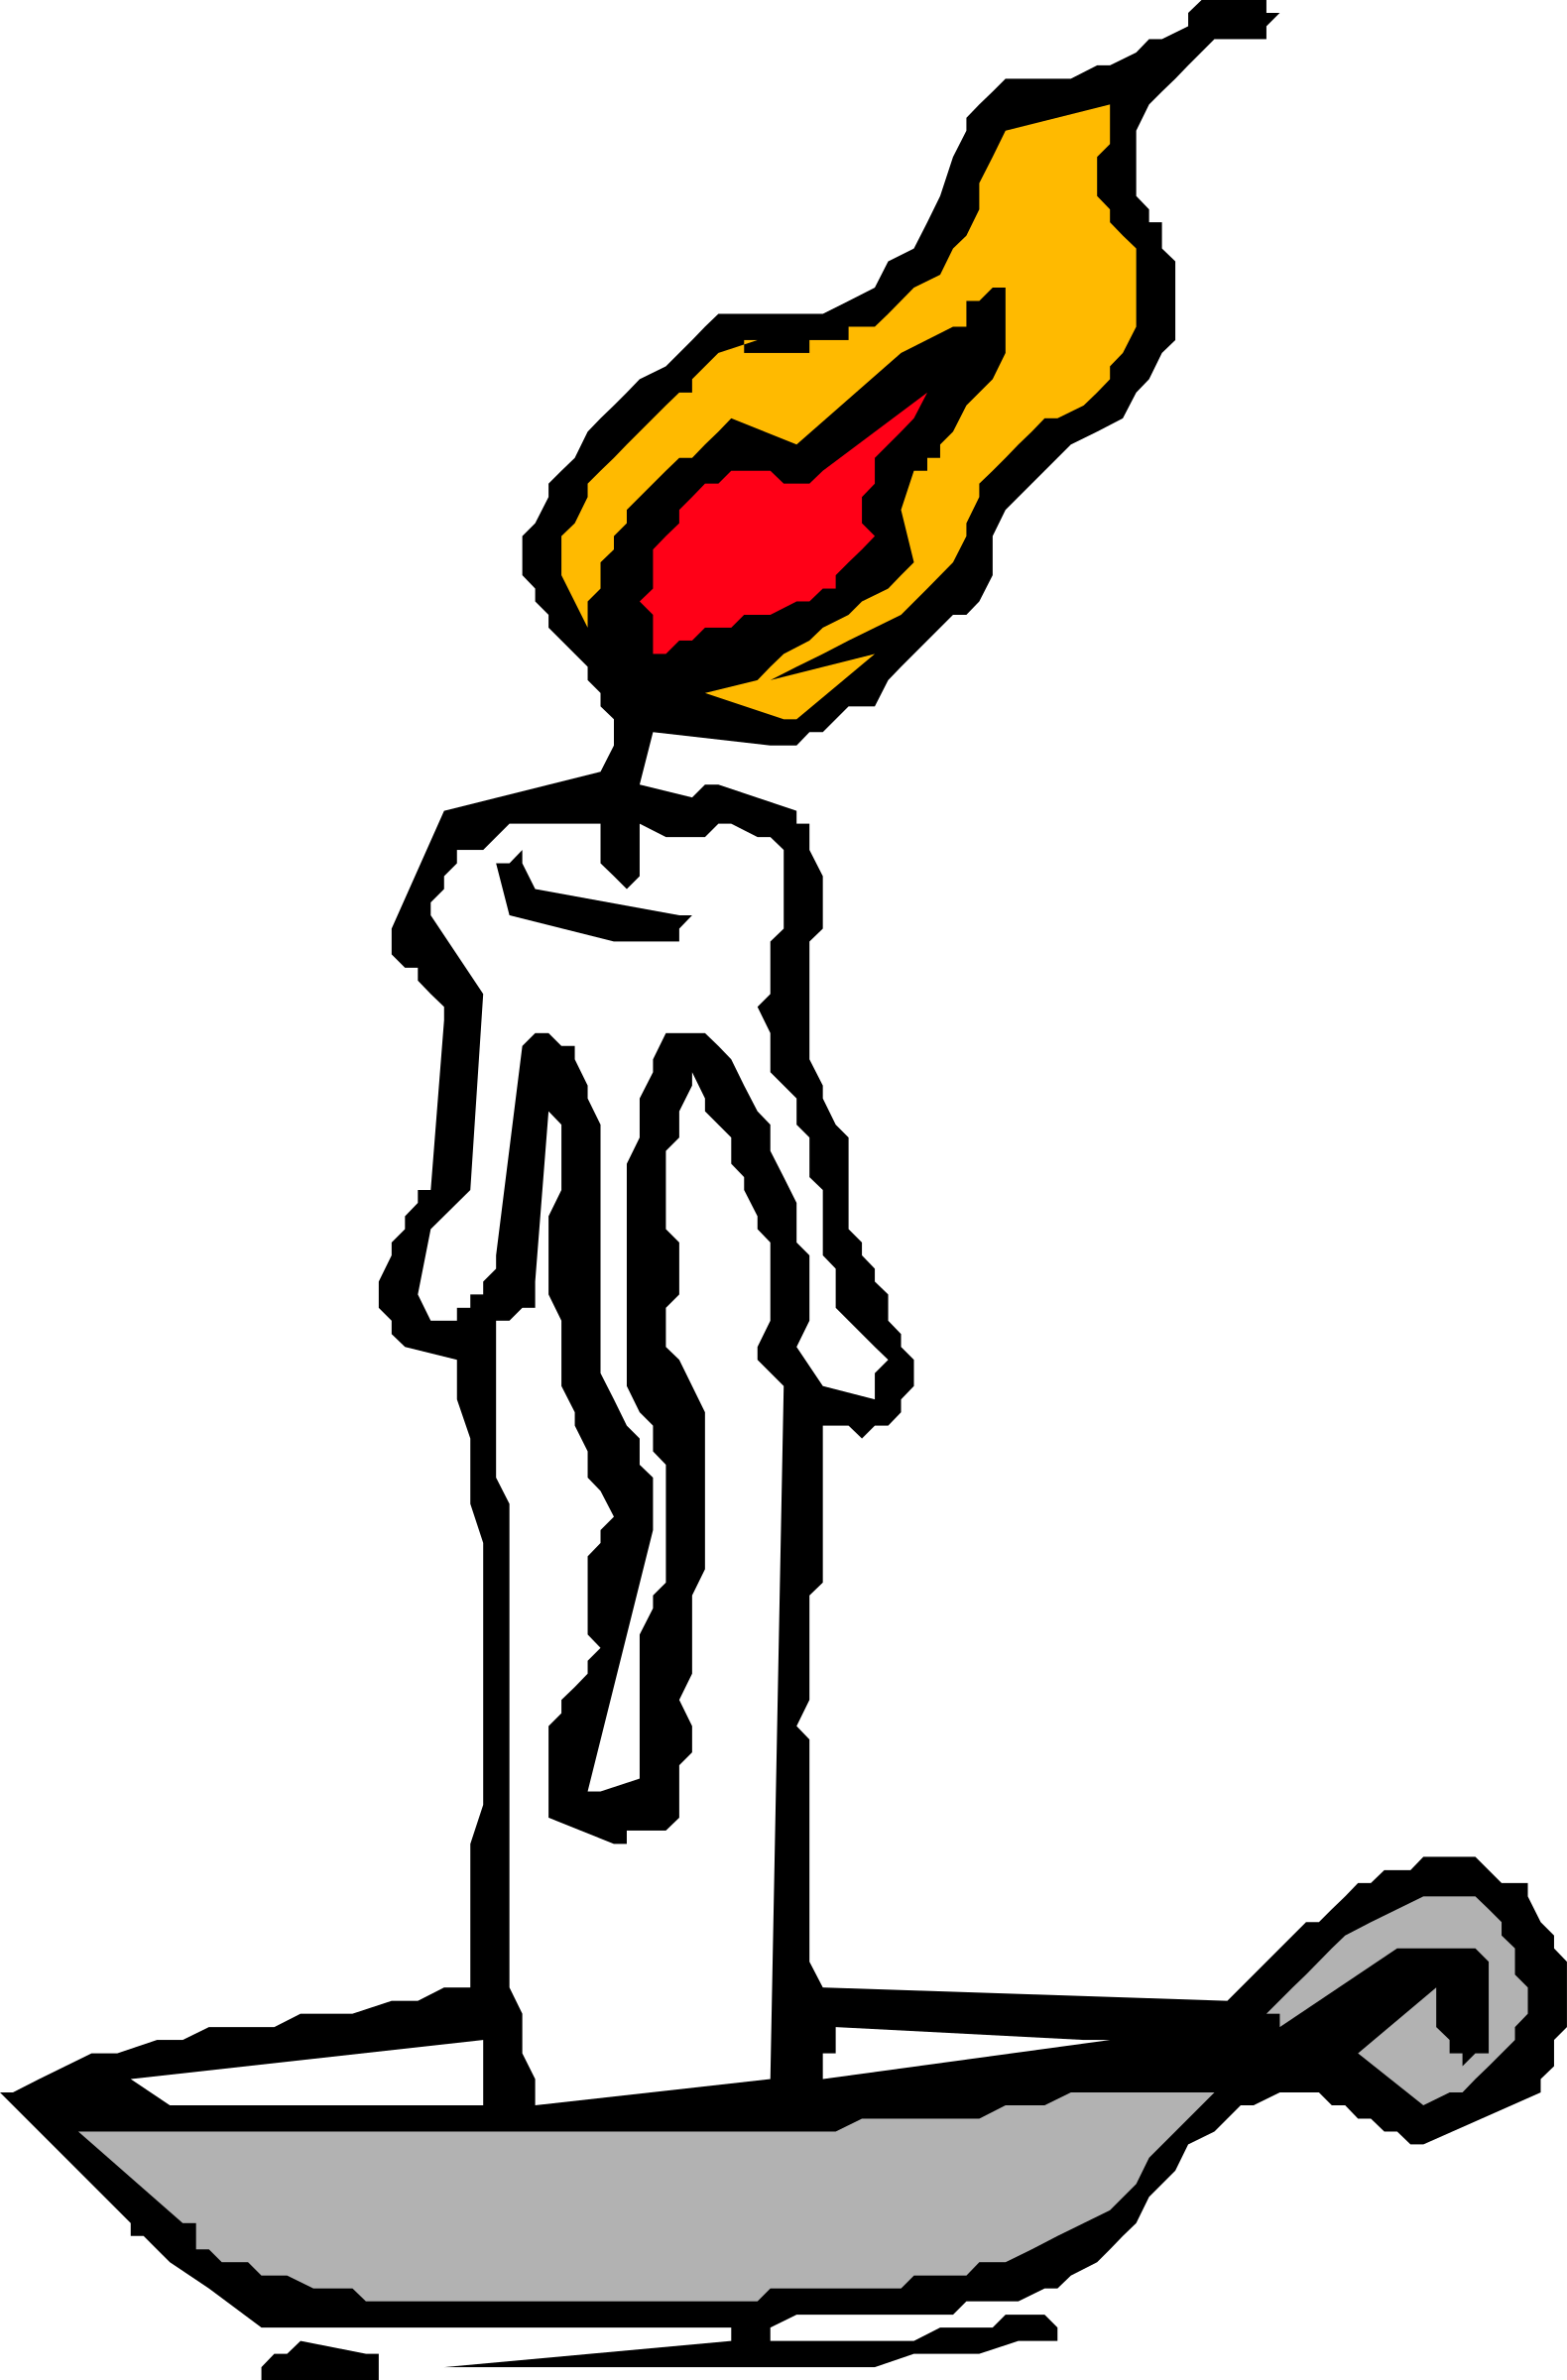 Candles clipart burning. Candle big image png